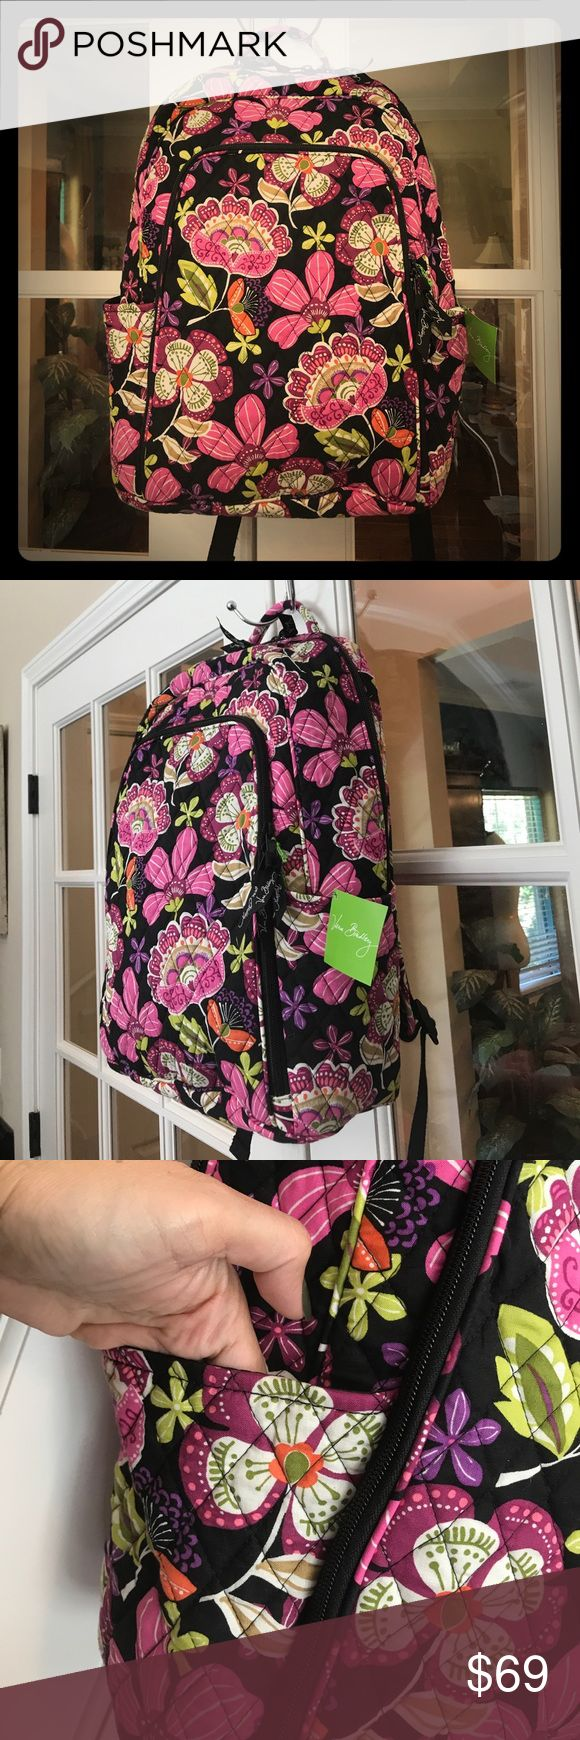 """🆕 Vera Bradley Laptop Backpack JUST IN‼️- This Vera Bradley Pirouette Pink Laptop Backpack is large with many pockets.   All compartments are lined with Vera Bradley fabric.  Main compartment has an extra separate padded pocket for your laptop.  The front zippered pocket has one zippered pocket and two slip pockets.  There is also a pocket on each side of the bag.  Very well made backpack!  Roughly 12.5""""L x 17""""H x 6""""W Vera Bradley Bags Backpacks"""